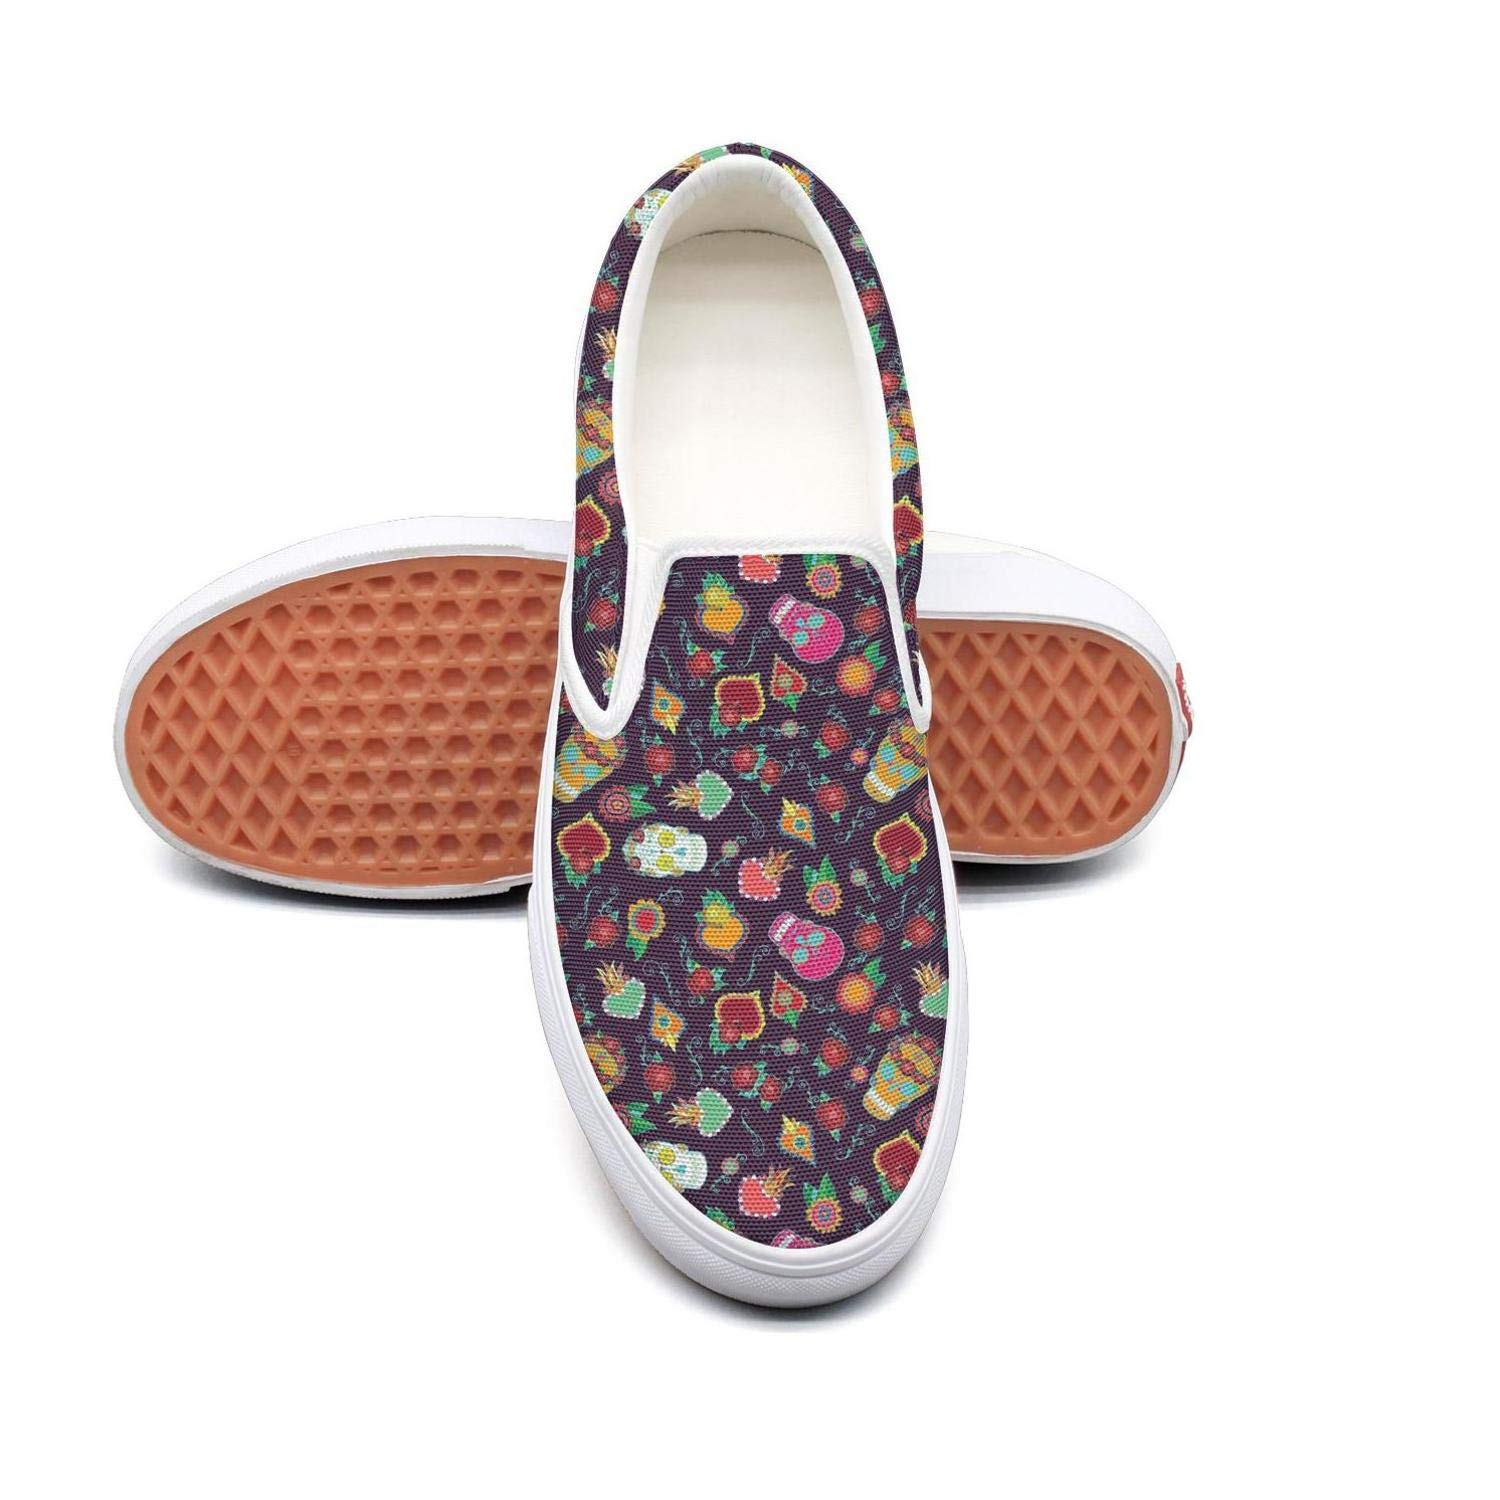 Dia De Los Muertos Skull Slip On Canvas Upper Loafers Canvas Shoes for Women Round Toe